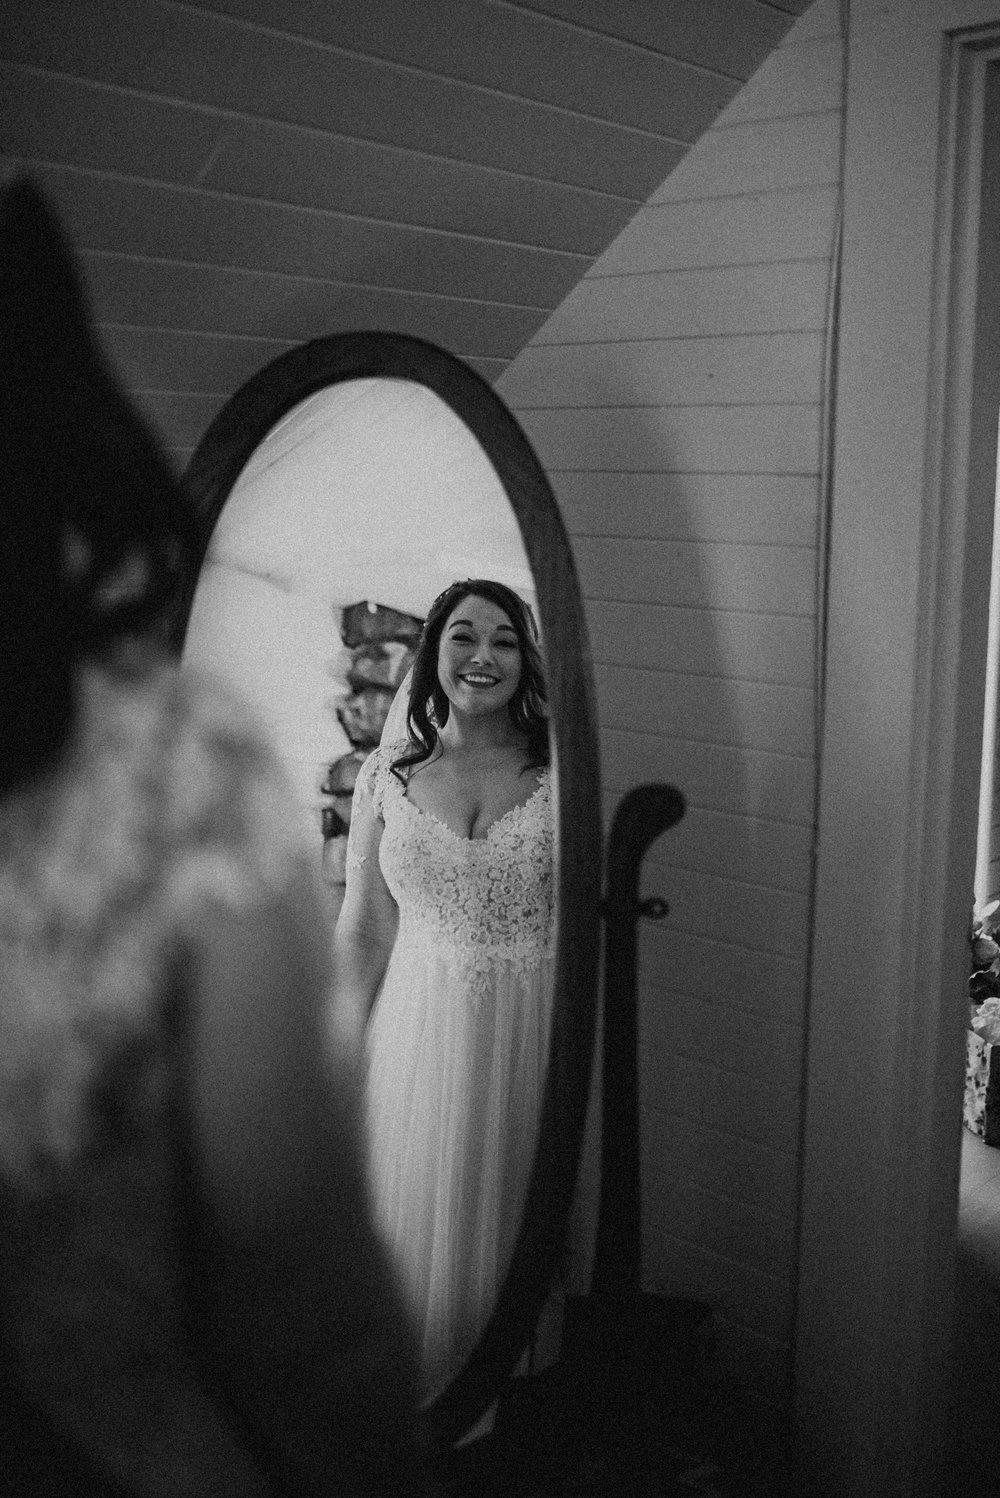 VanessaAlvesPhotography_AtlantaWeddingPhotographers_RockportMAWedding_BostonWeddingPhotographers_CarnivalThemedWedding_32.jpg